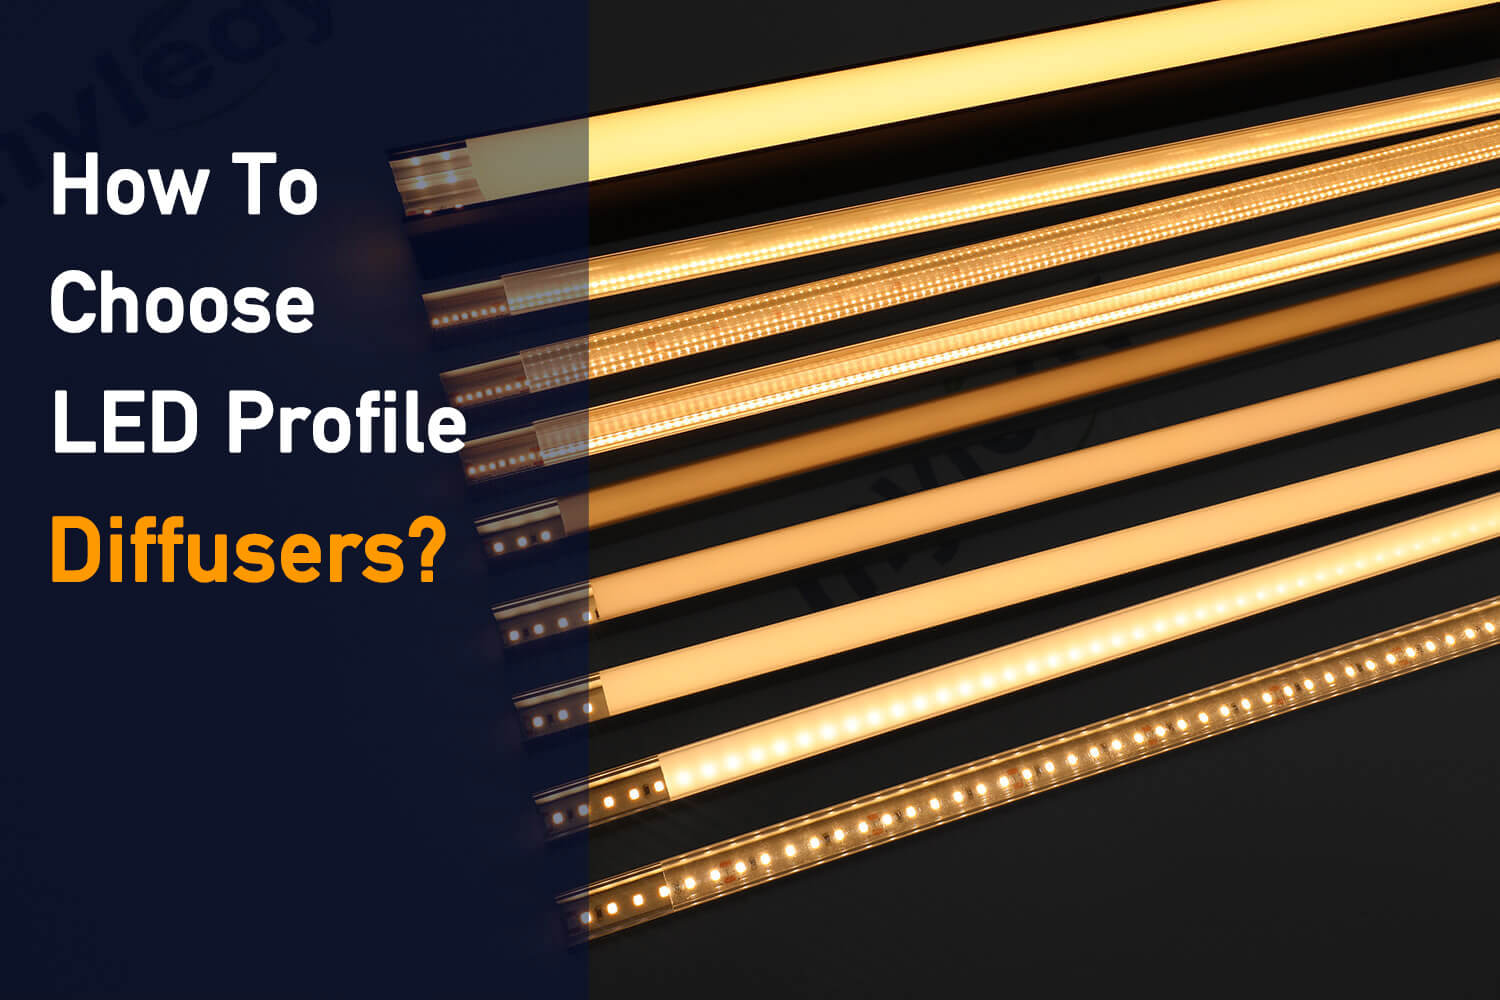 the definitive guide for how to choose led profile diffuser